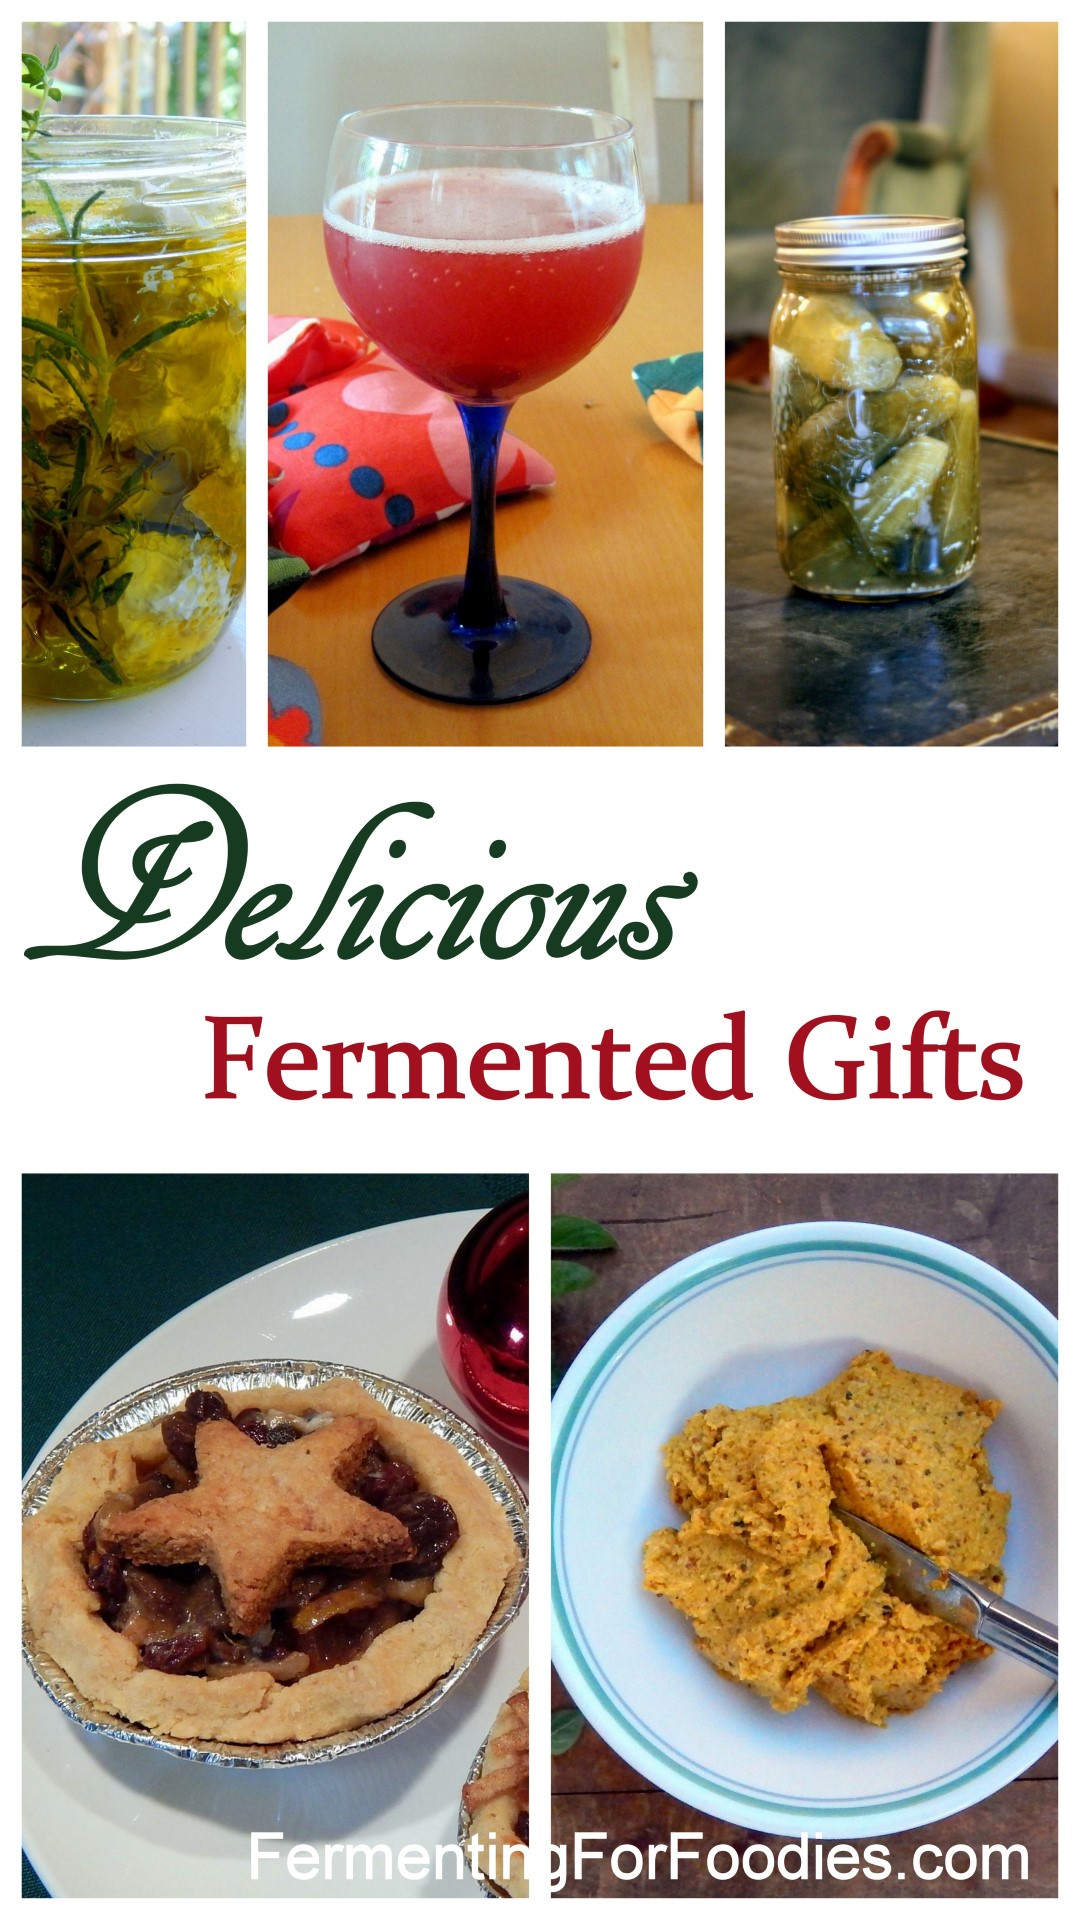 Mustard, mincemeat, pickles and cheese. Gifts for Christmas and Hanukkah